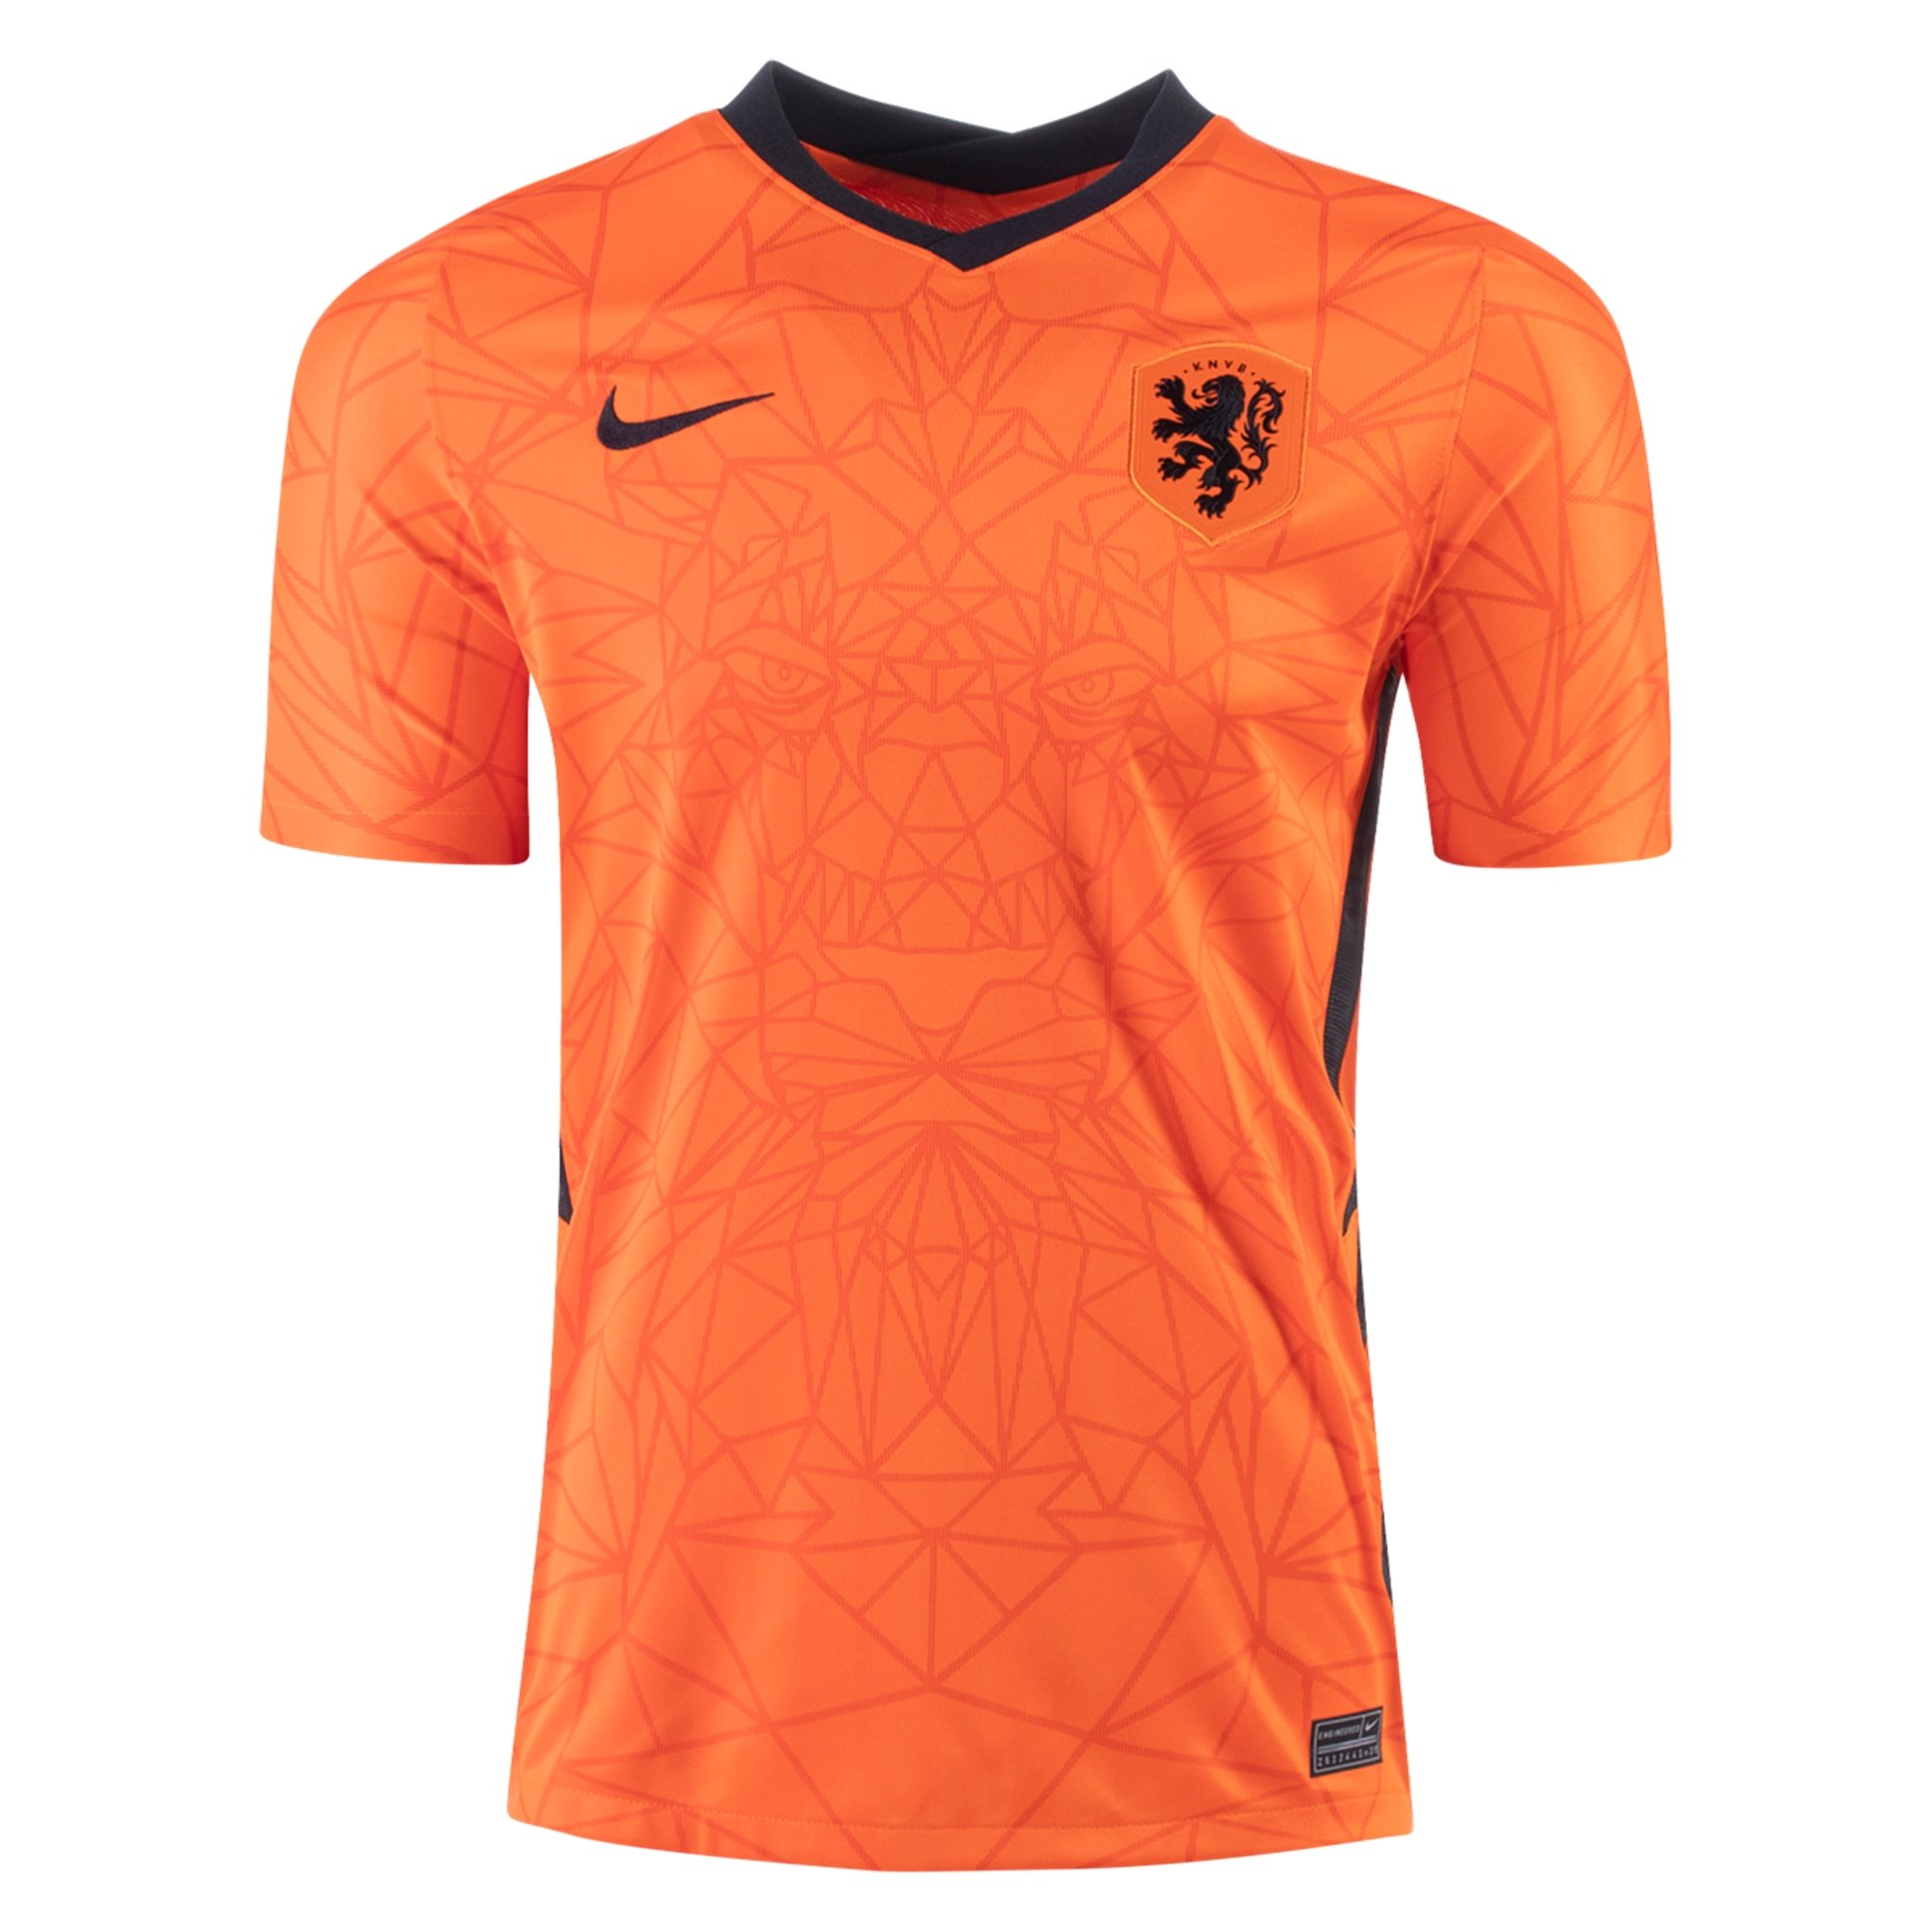 Nike Replica Netherlands Home Jersey 2020